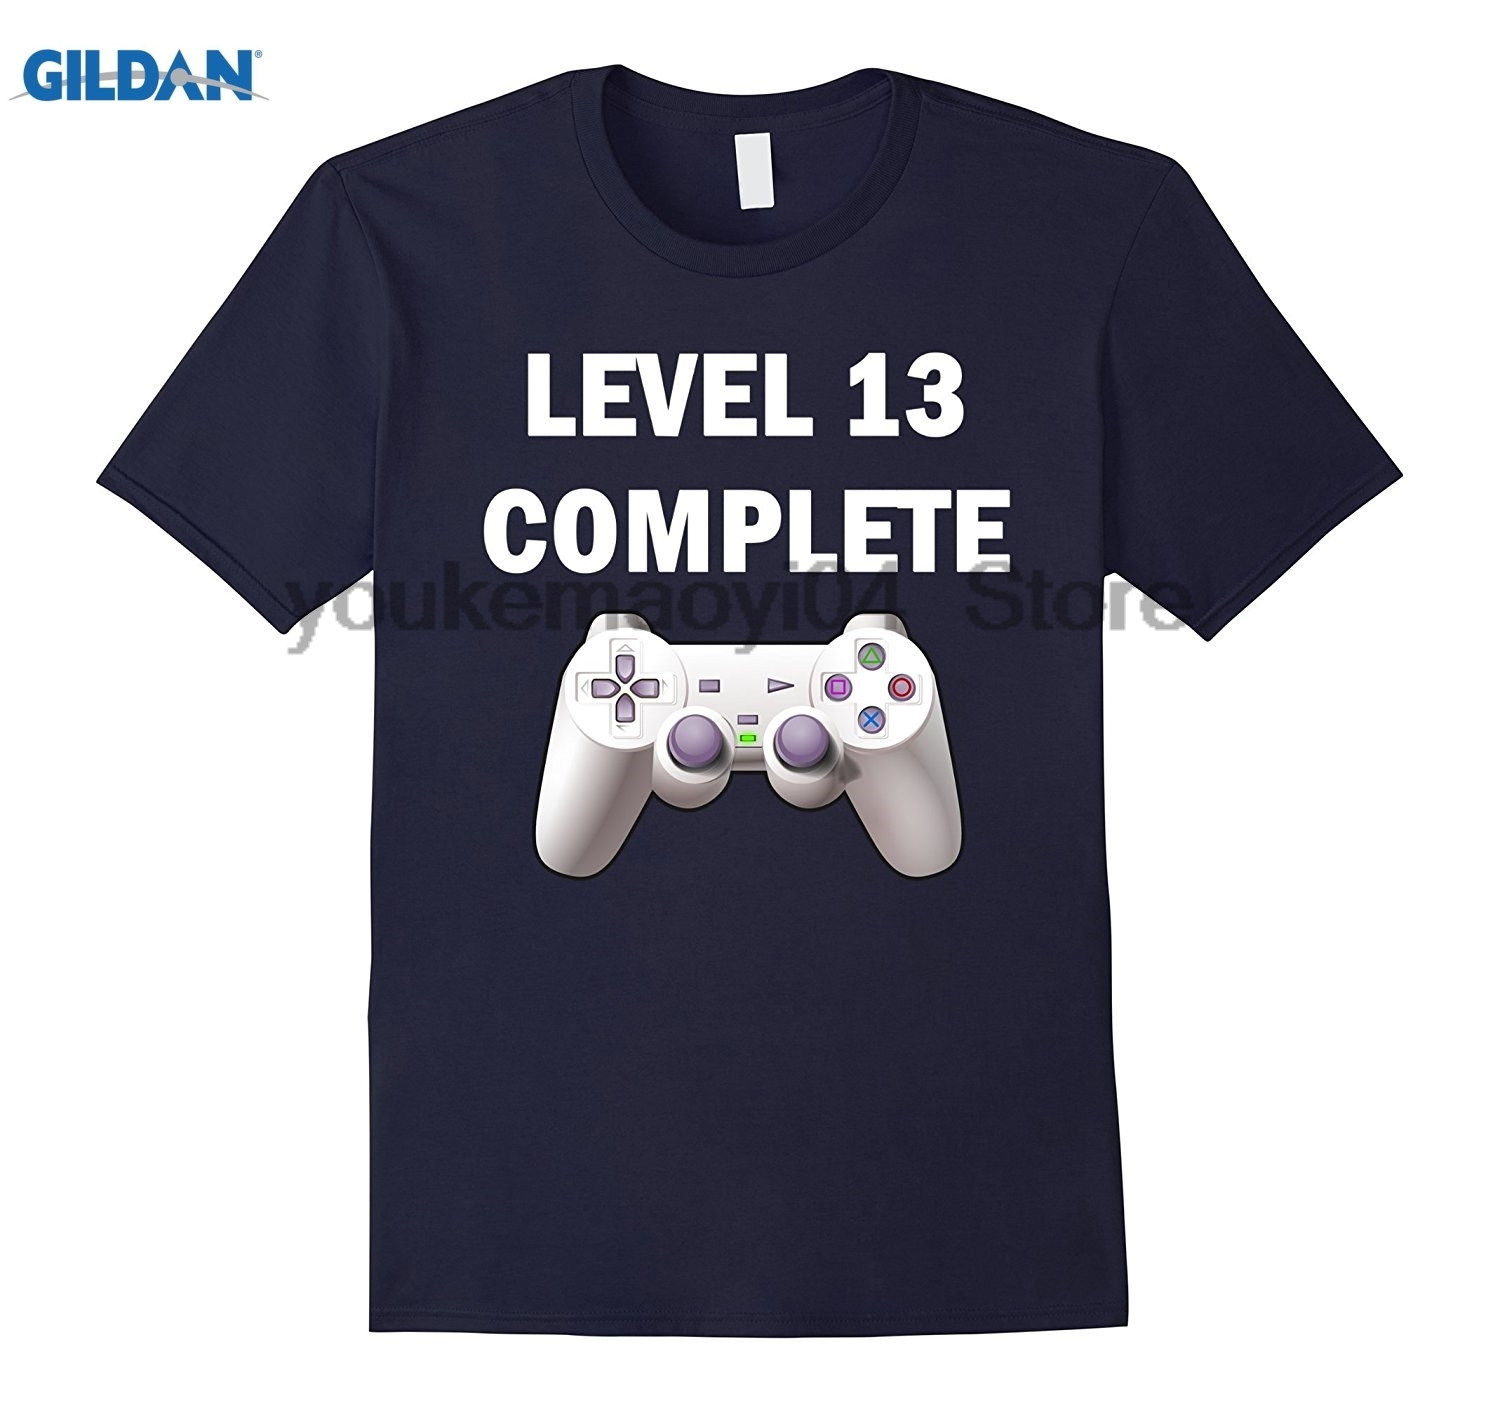 GILDAN Level 13 Complete Funny Video Games 13th Birthday T-Shirt Trendy Creative Graphic T-shirt Top